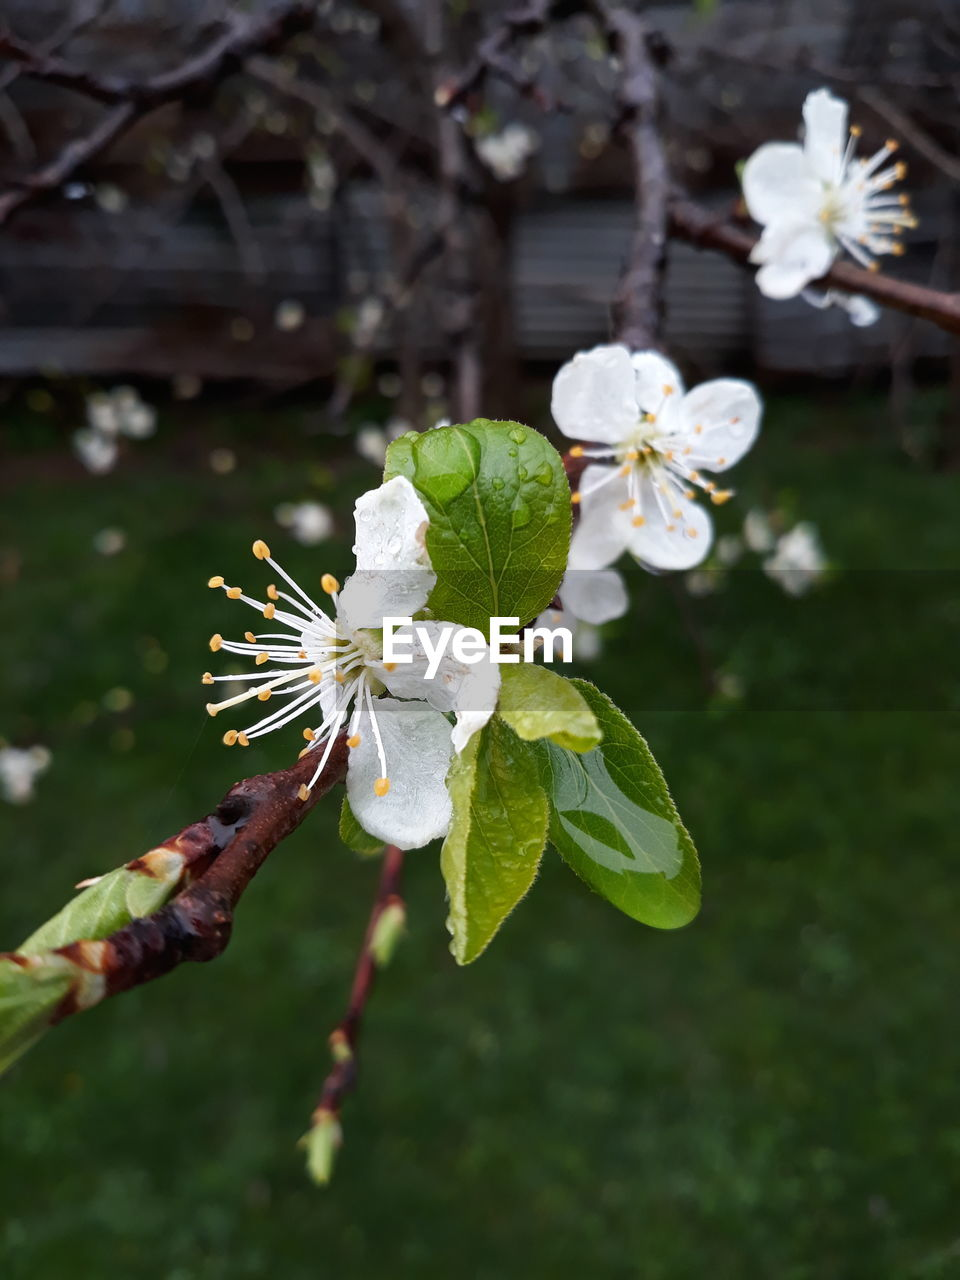 flower, fragility, beauty in nature, white color, growth, nature, freshness, petal, flower head, blossom, botany, day, apple blossom, close-up, springtime, plant, branch, focus on foreground, leaf, no people, outdoors, stamen, tree, blooming